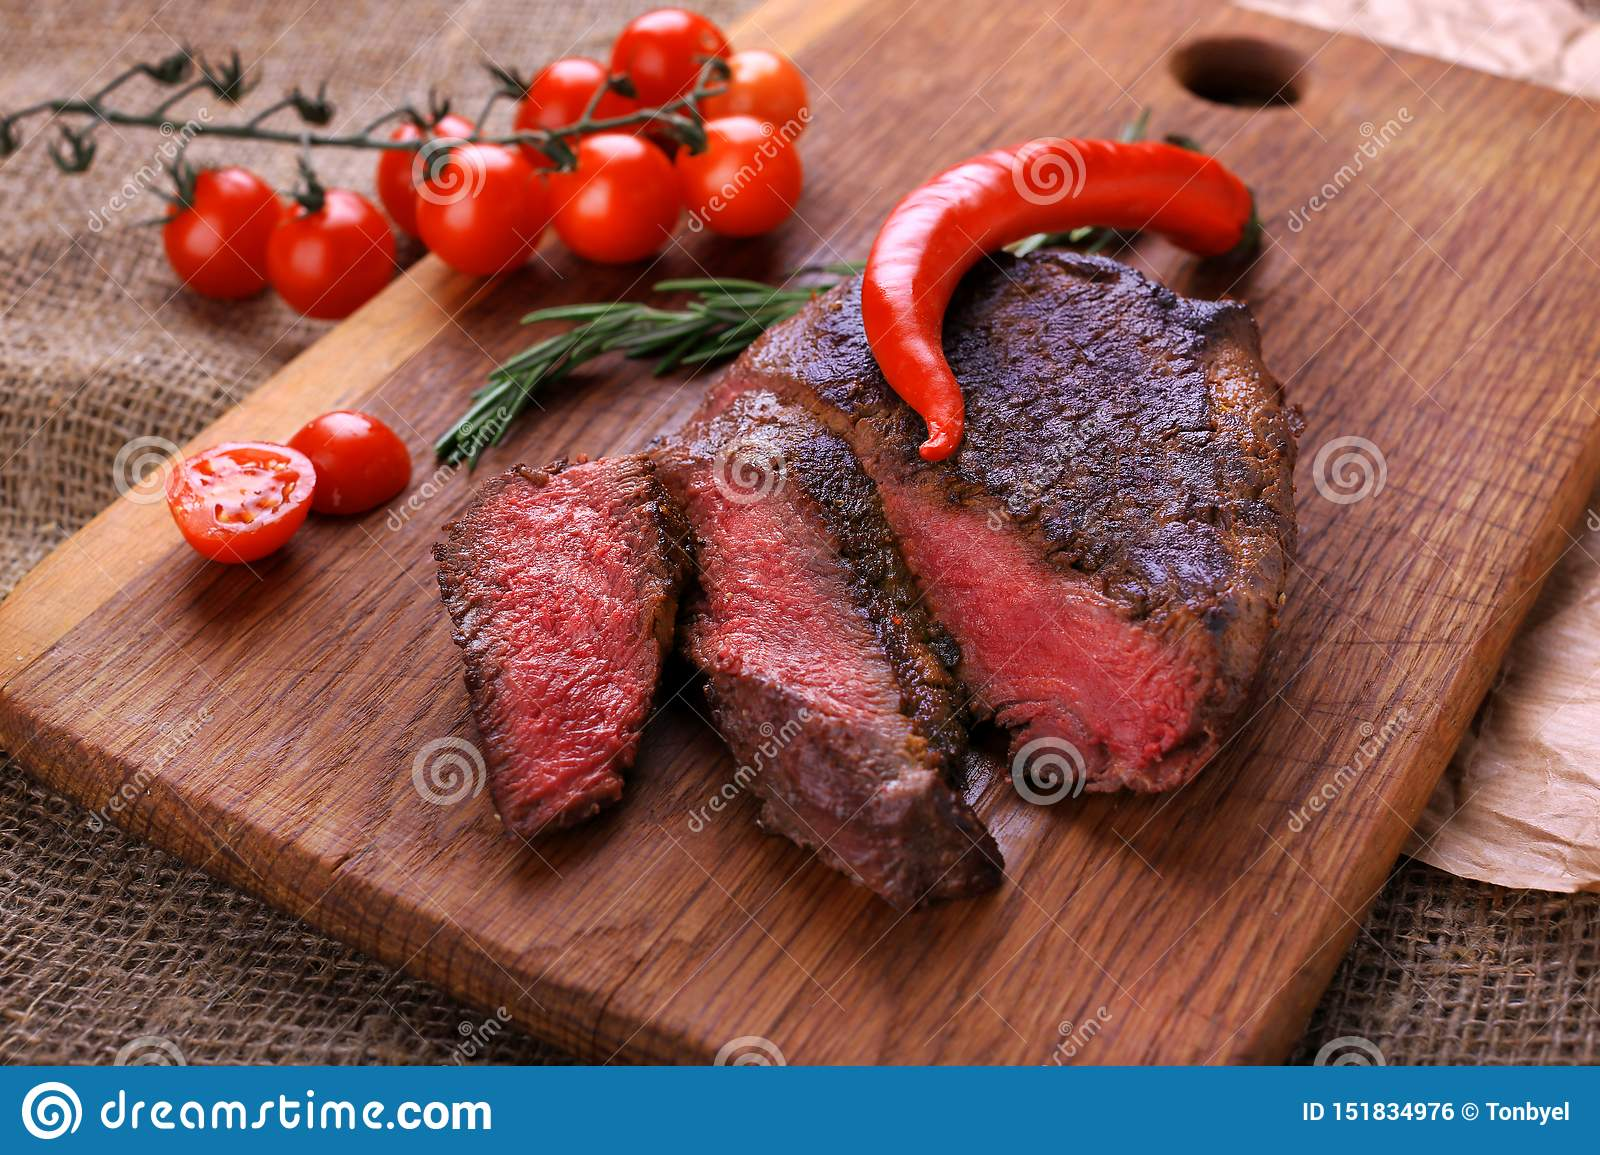 Well-done steak with chili pepper and cherry tomatoes on a wooden dish. Food photo for restaurant menu